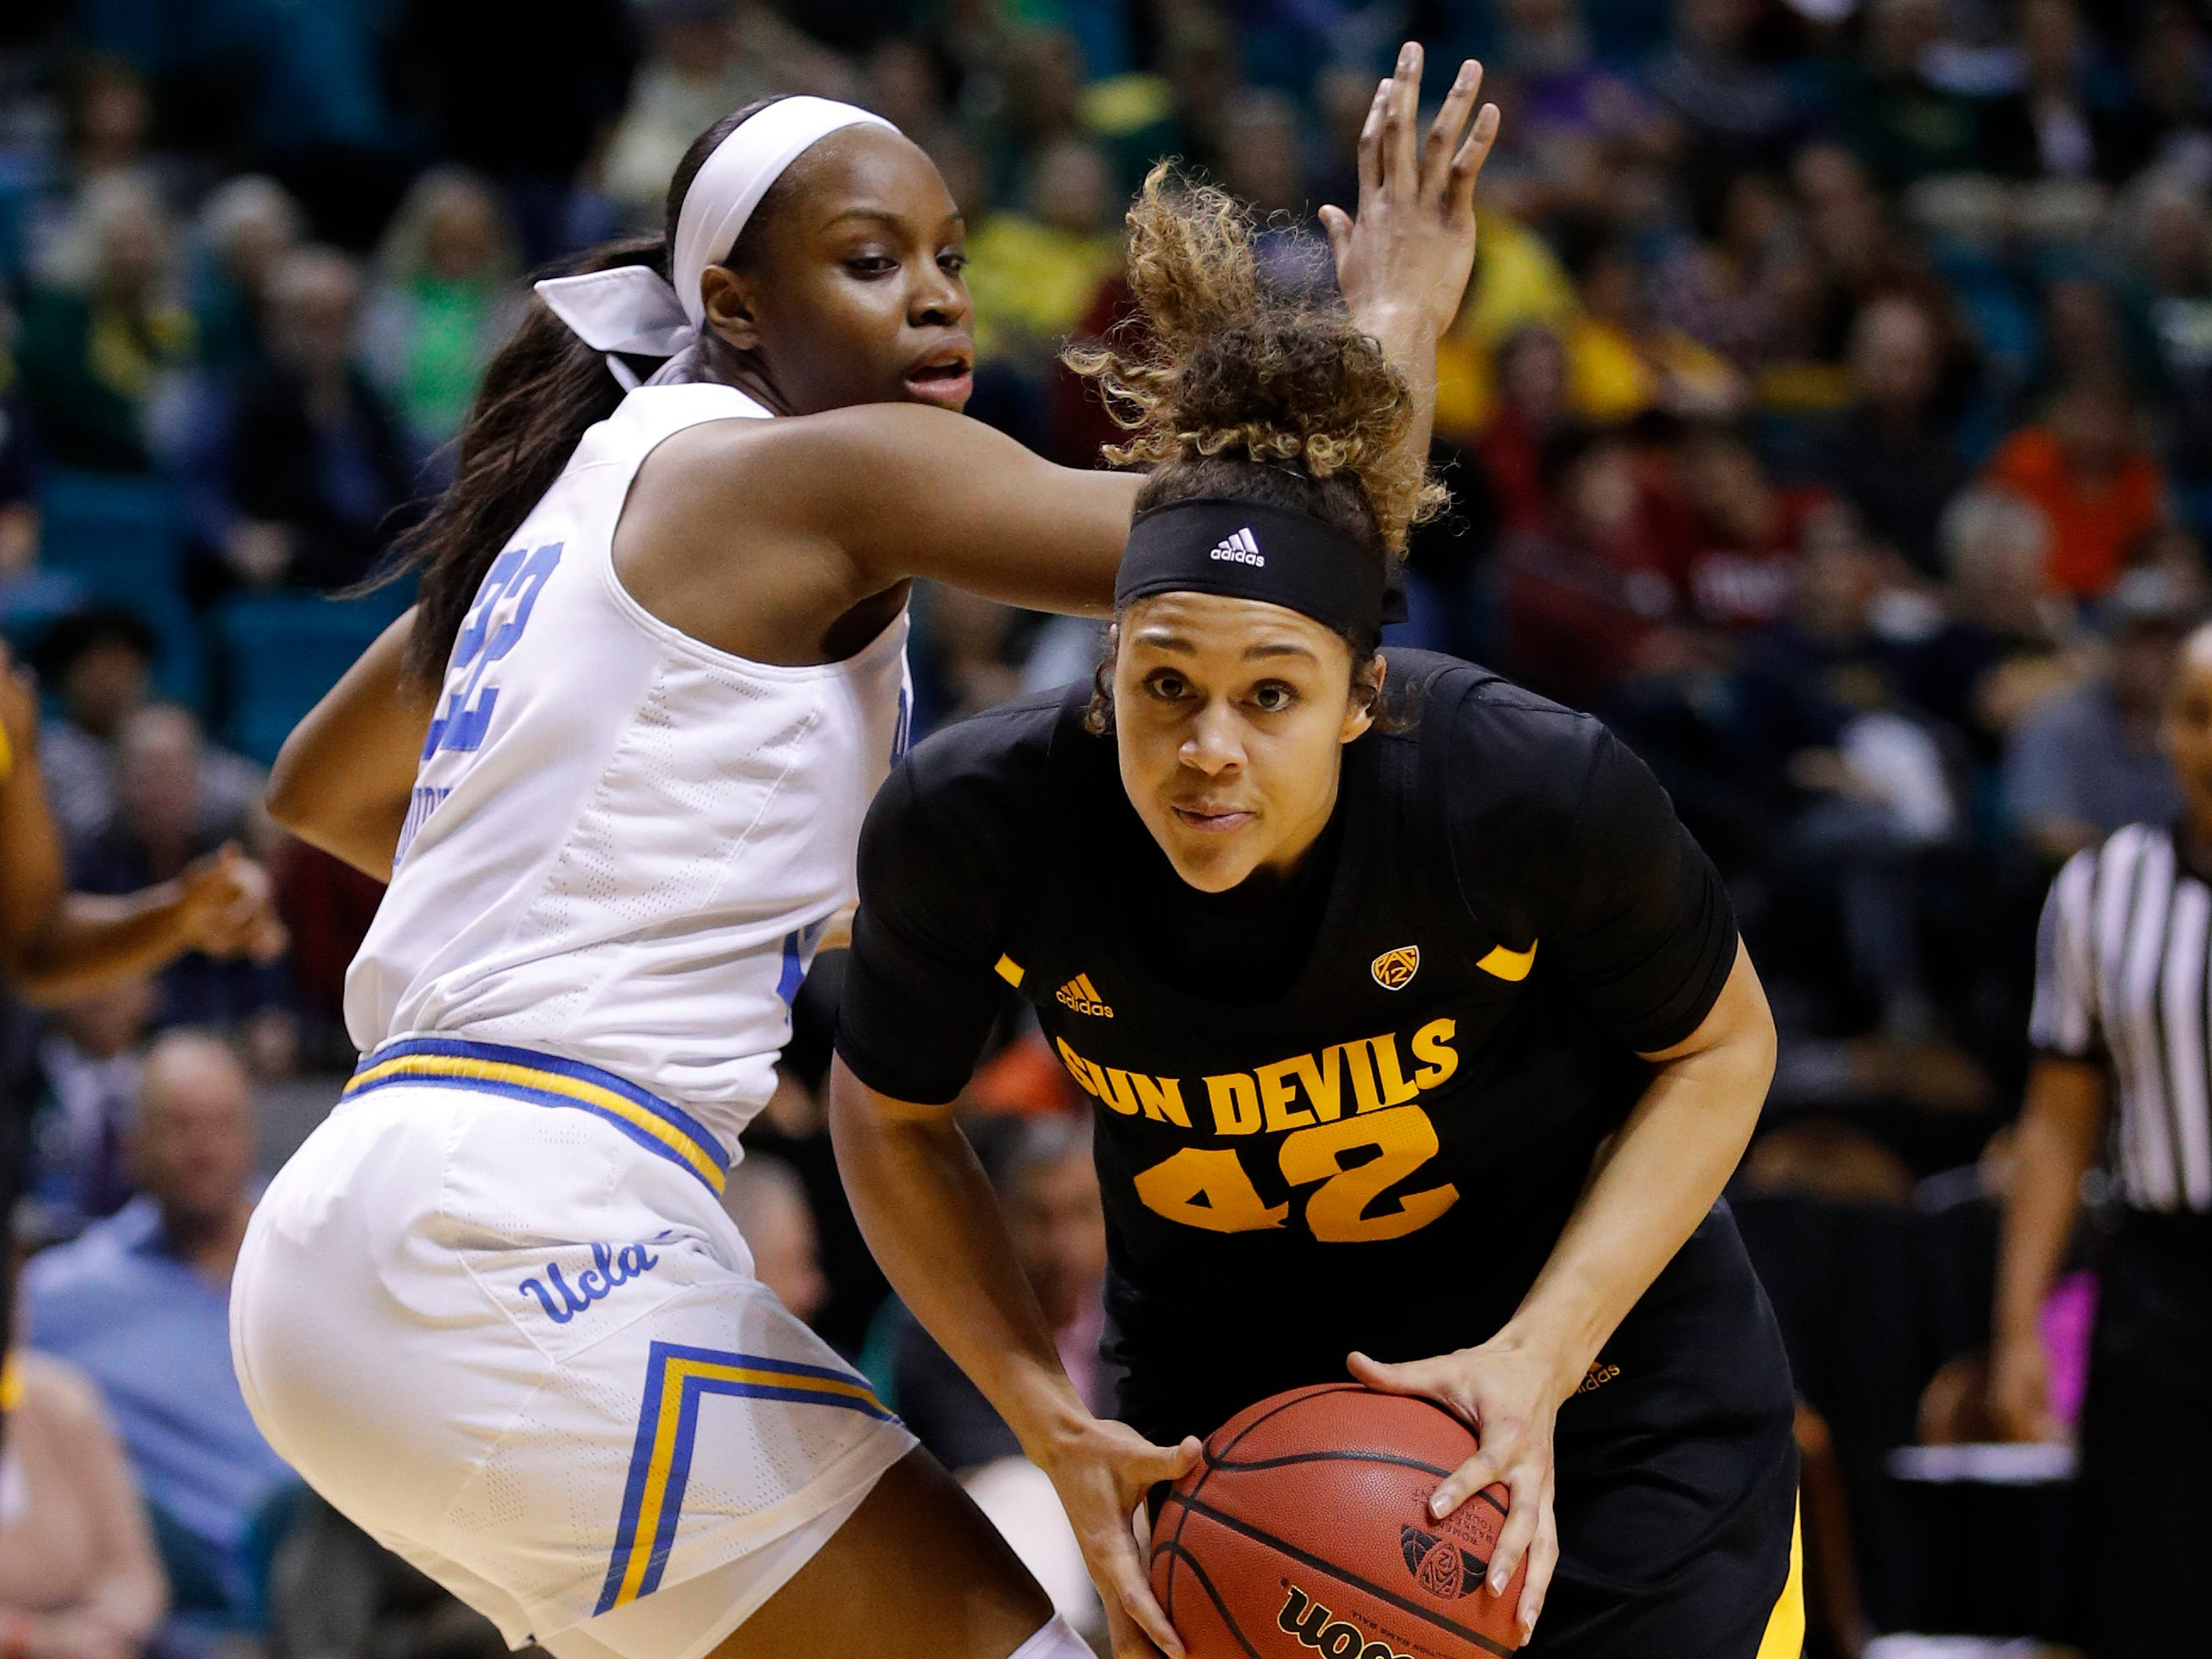 Arizona State's Kianna Ibis drives around UCLA's Kennedy Burke during the first half of an NCAA college basketball game at the Pac-12 women's tournament Friday, March 8, 2019, in Las Vegas.